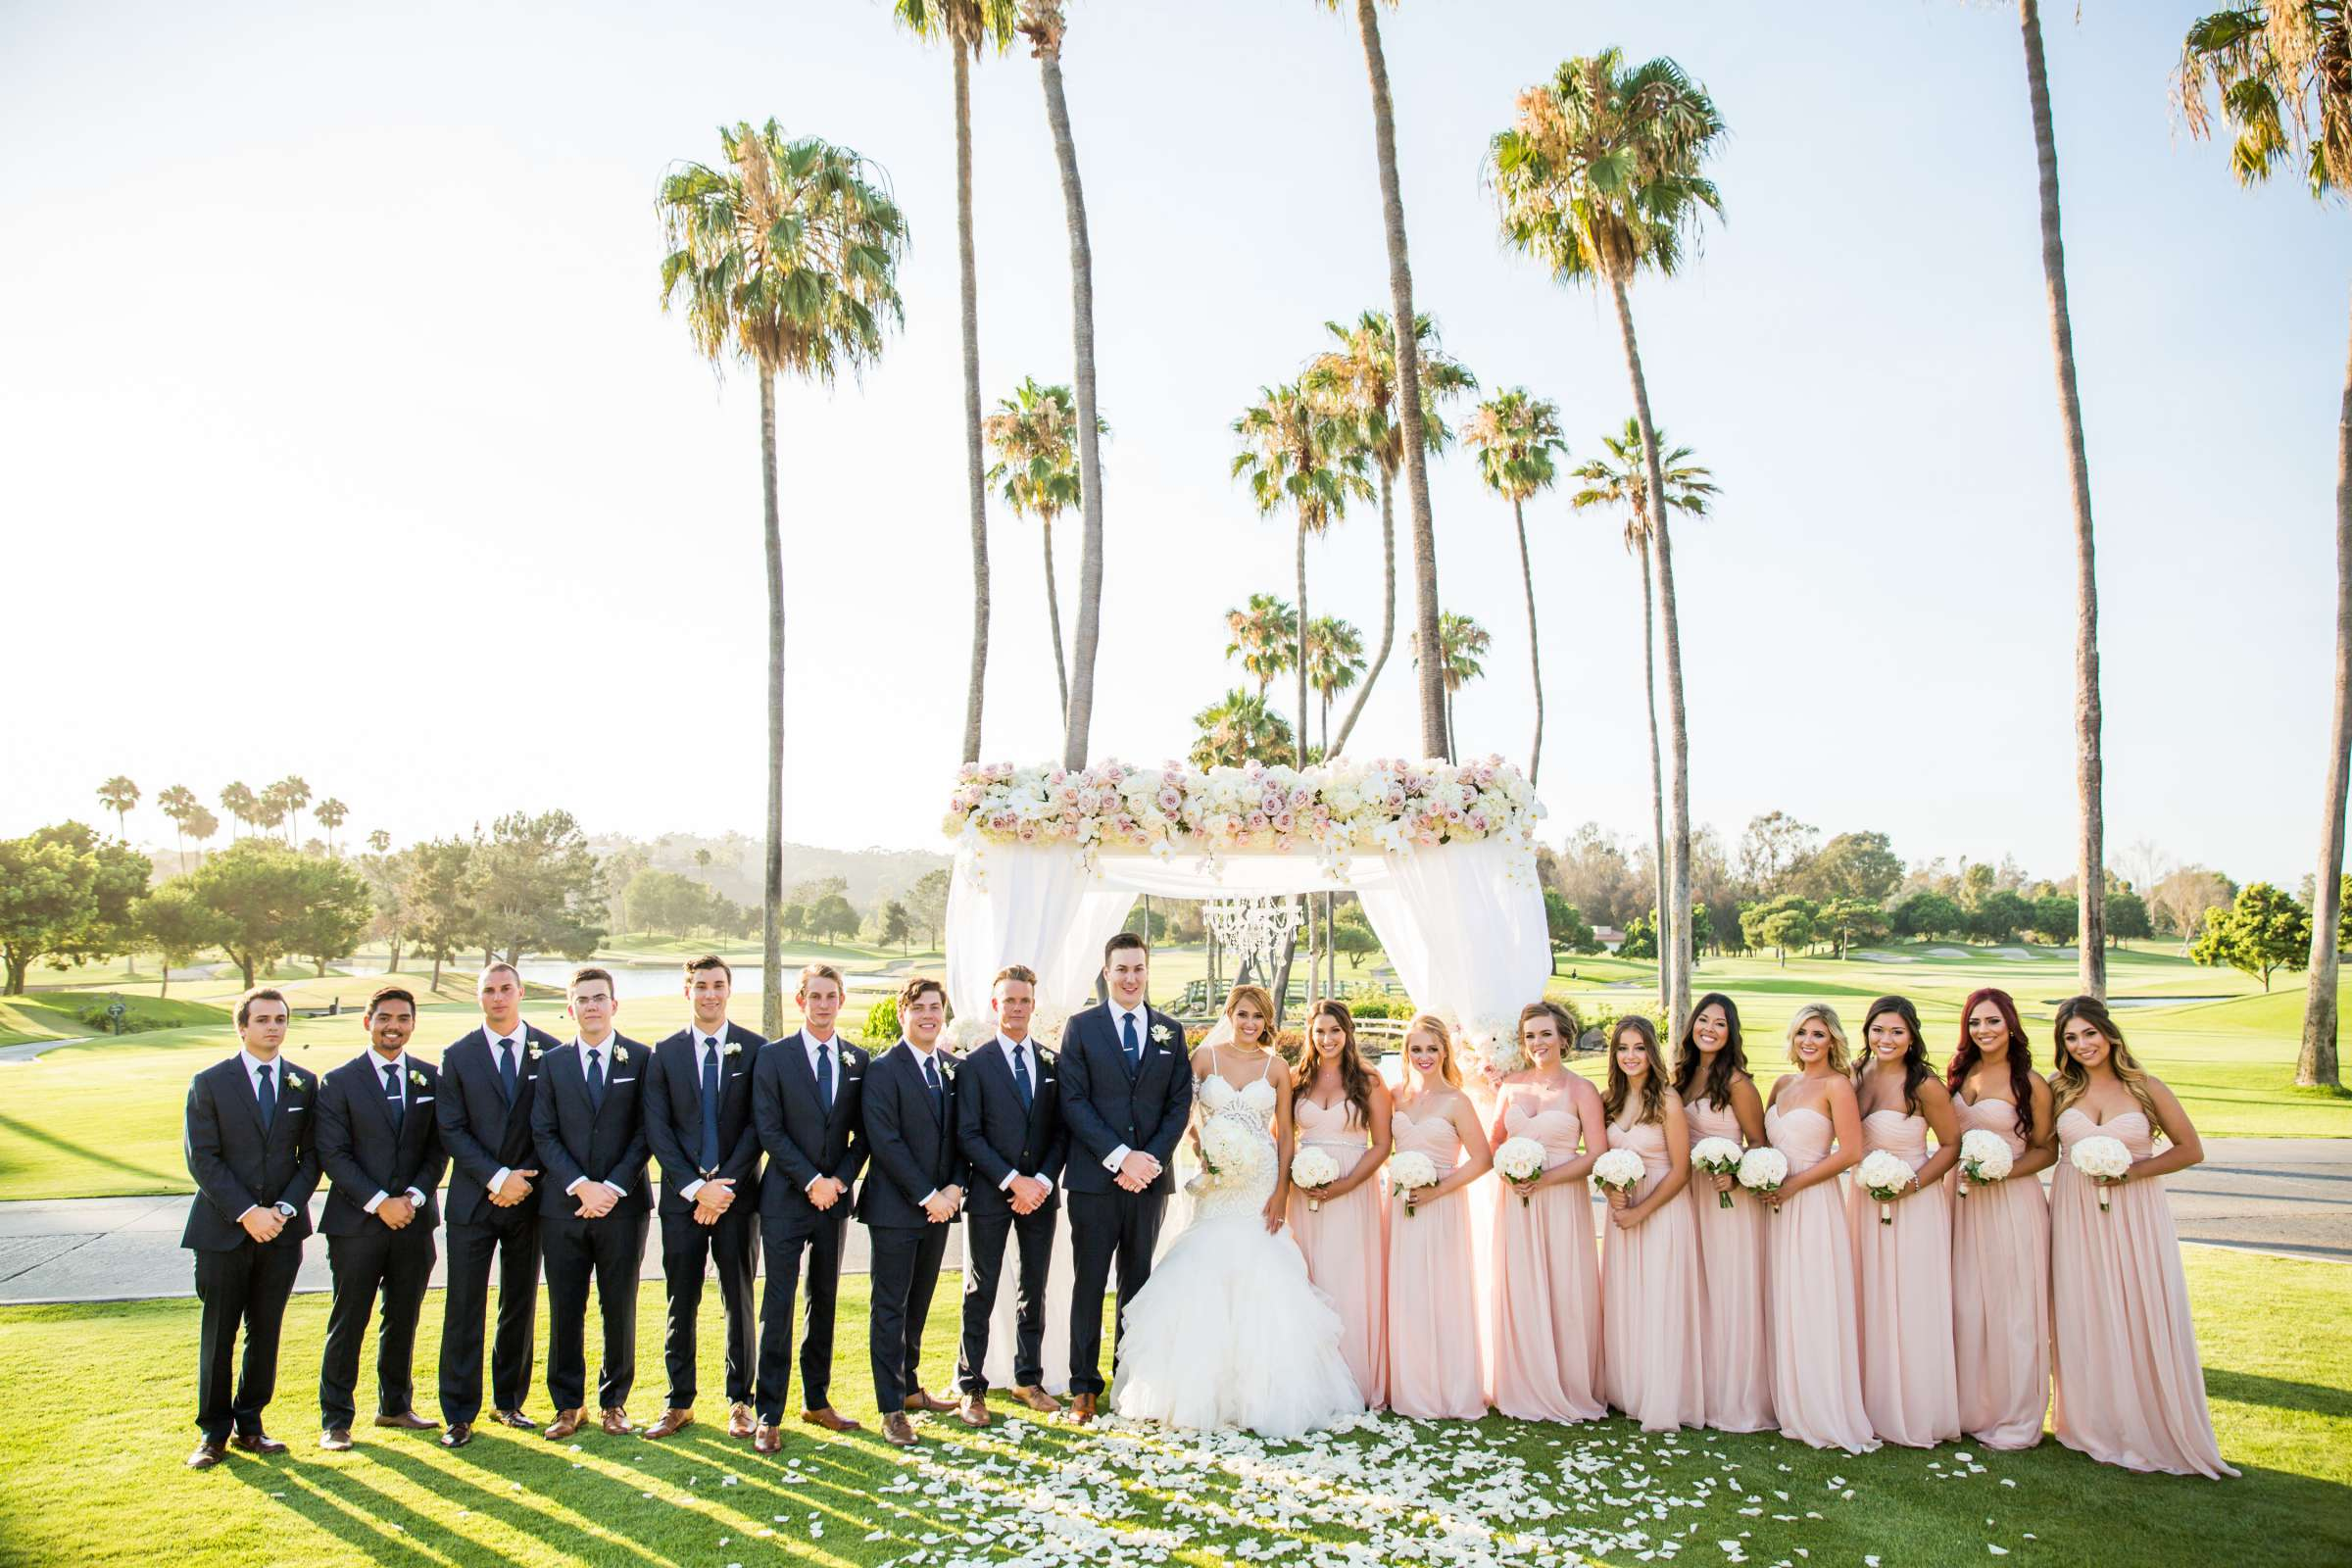 Fairbanks Ranch Country Club Wedding coordinated by Monarch Weddings, Gabriella and Kyle Wedding Photo #16 by True Photography